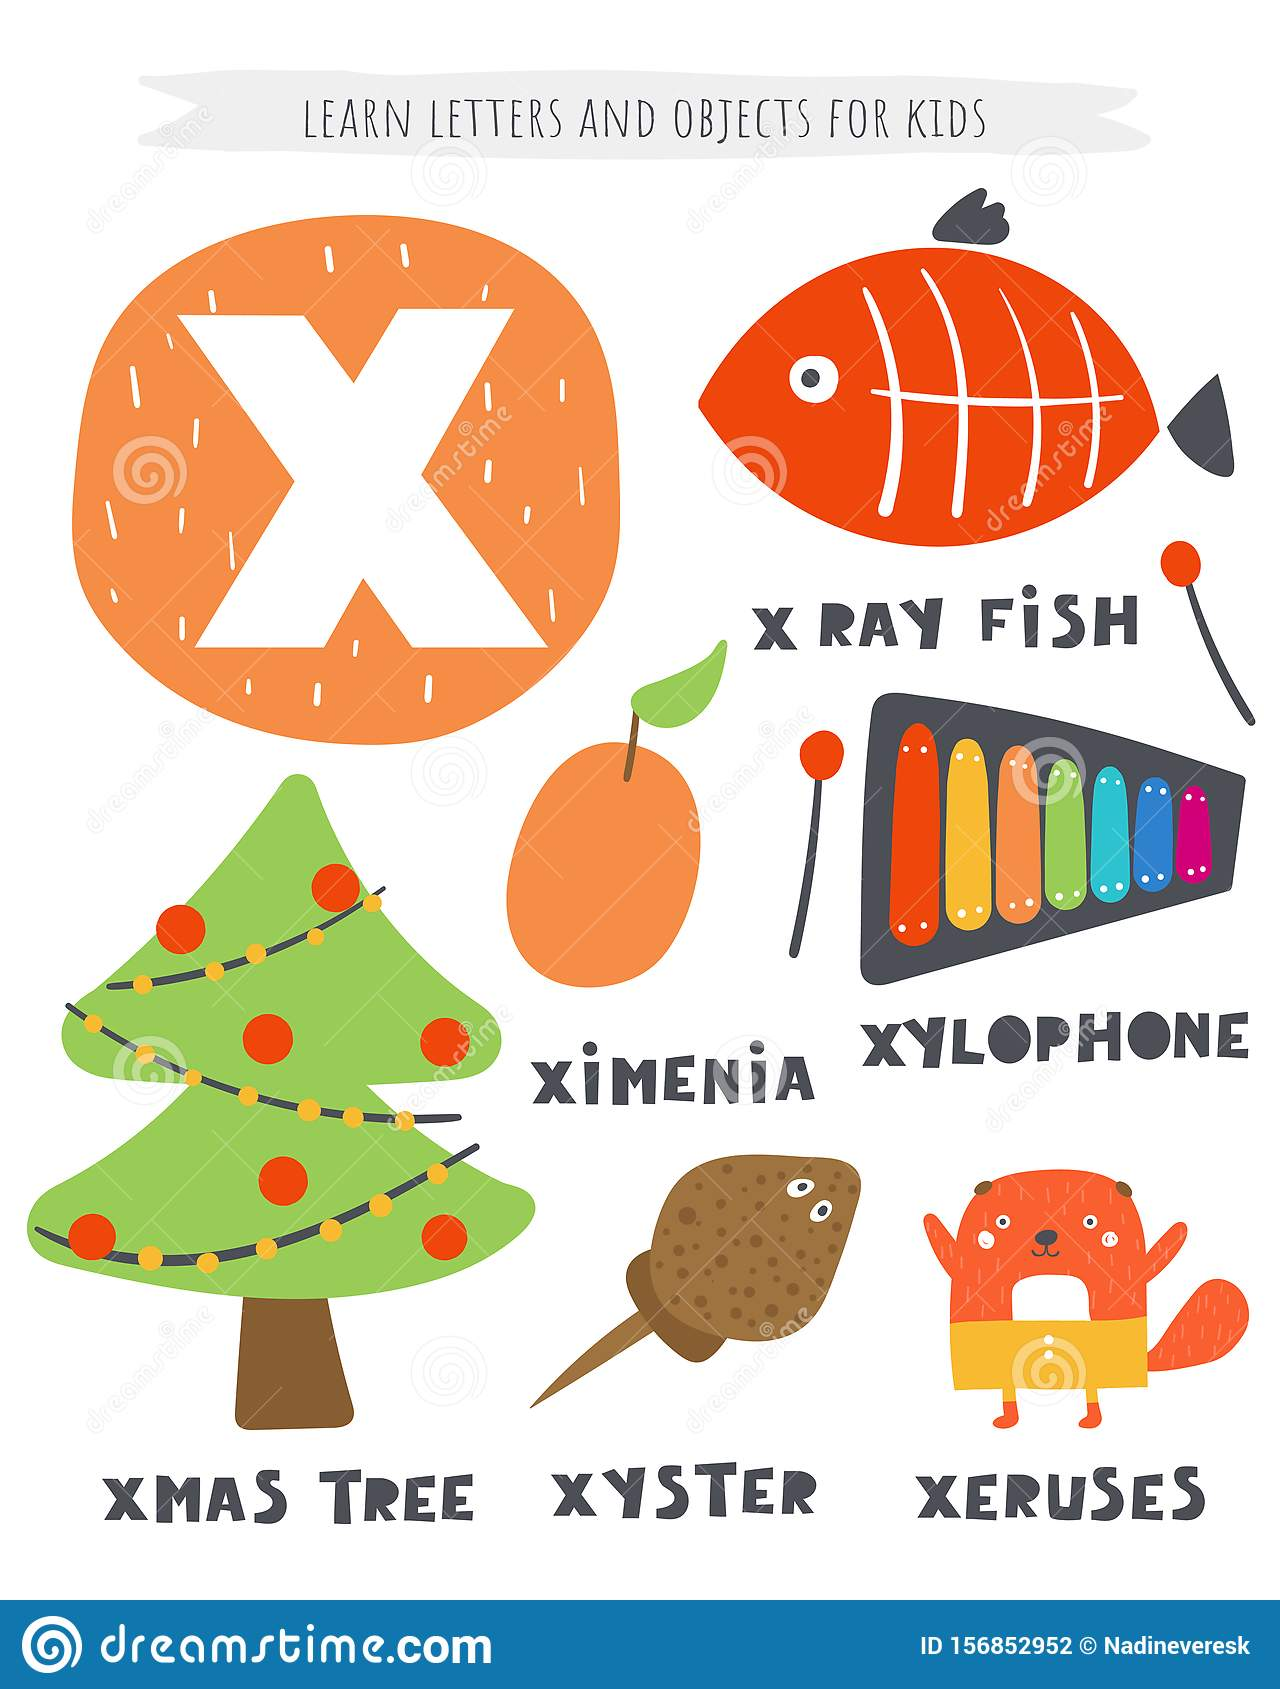 X Letter Objects And Animals Including Xmas Tree, X Ray Fish, Ximenia,  Xylophone, Xyster, Xeruses. Stock Vector - Illustration of blank,  collection: 156852952